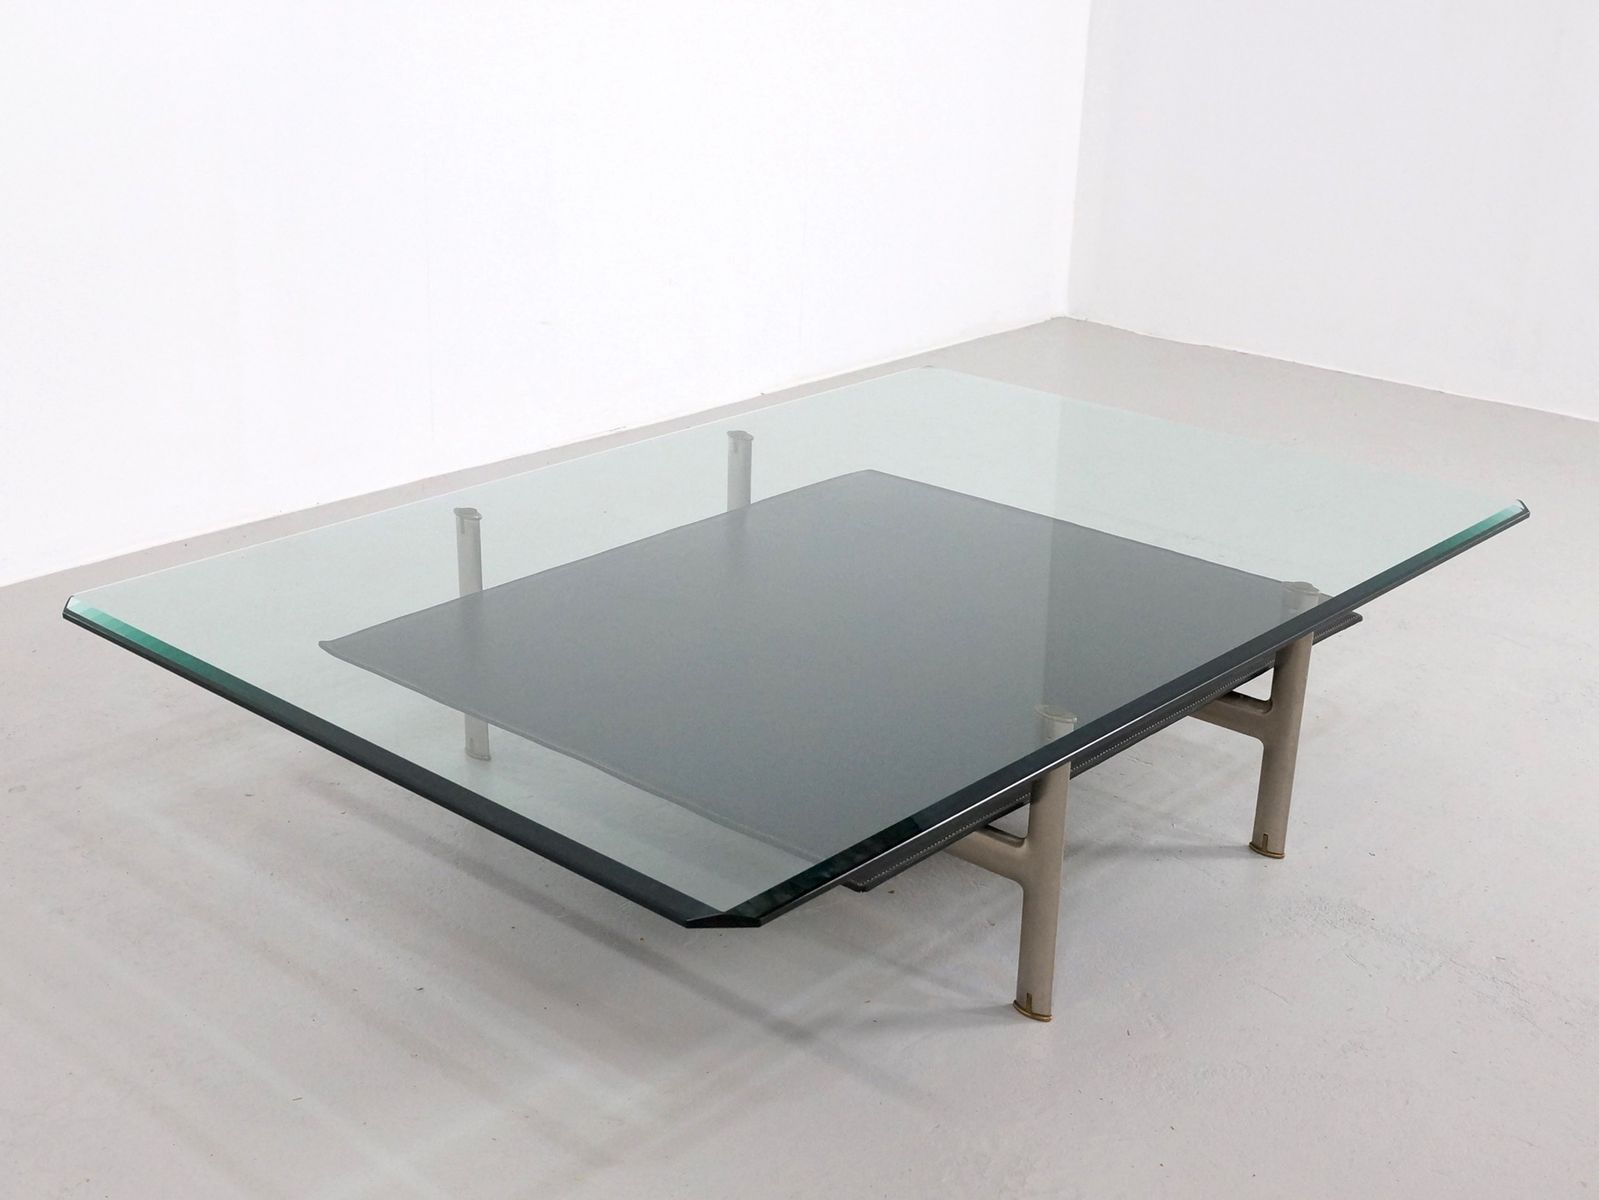 Italian Diesis Coffee Table By Antonio Citterio And Paolo Nava For B B Italia 1970s For Sale At